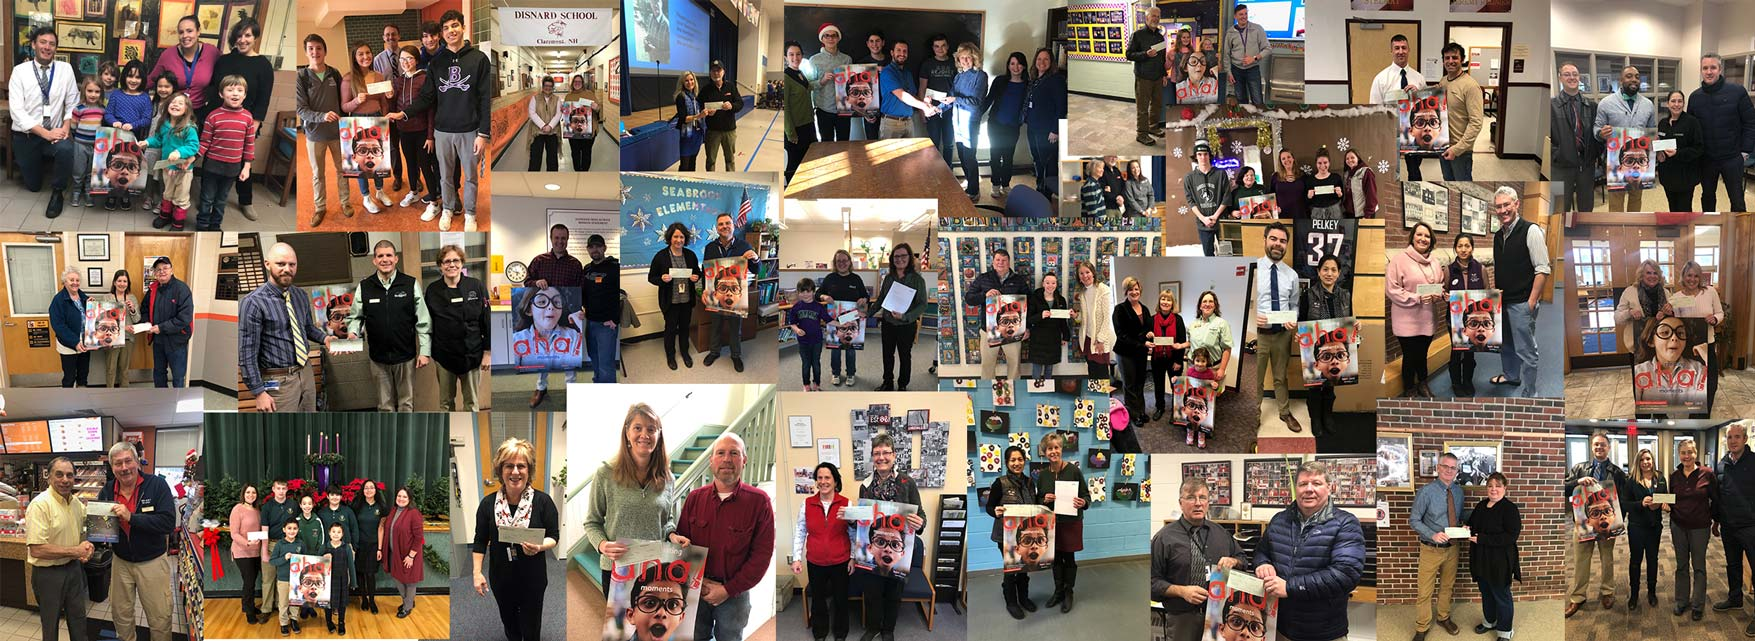 EAG Recipients collage